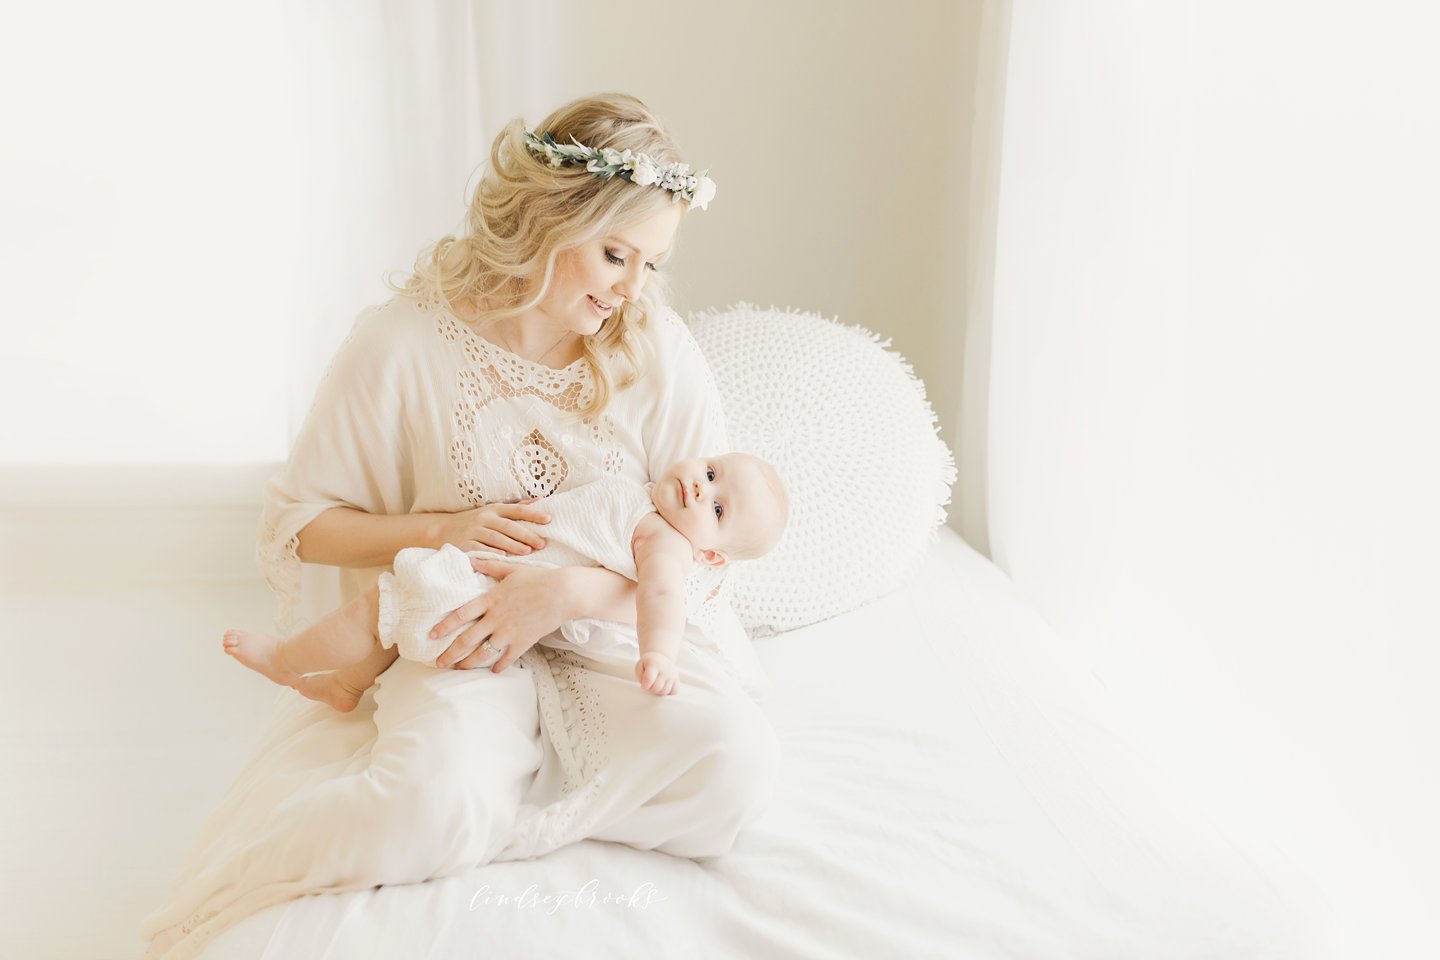 oklahoma_city_okc_mommy_and_me_motherhood_photographer_baby_child_flower_crown_halo_six_months_organic_simple_photos_11.png